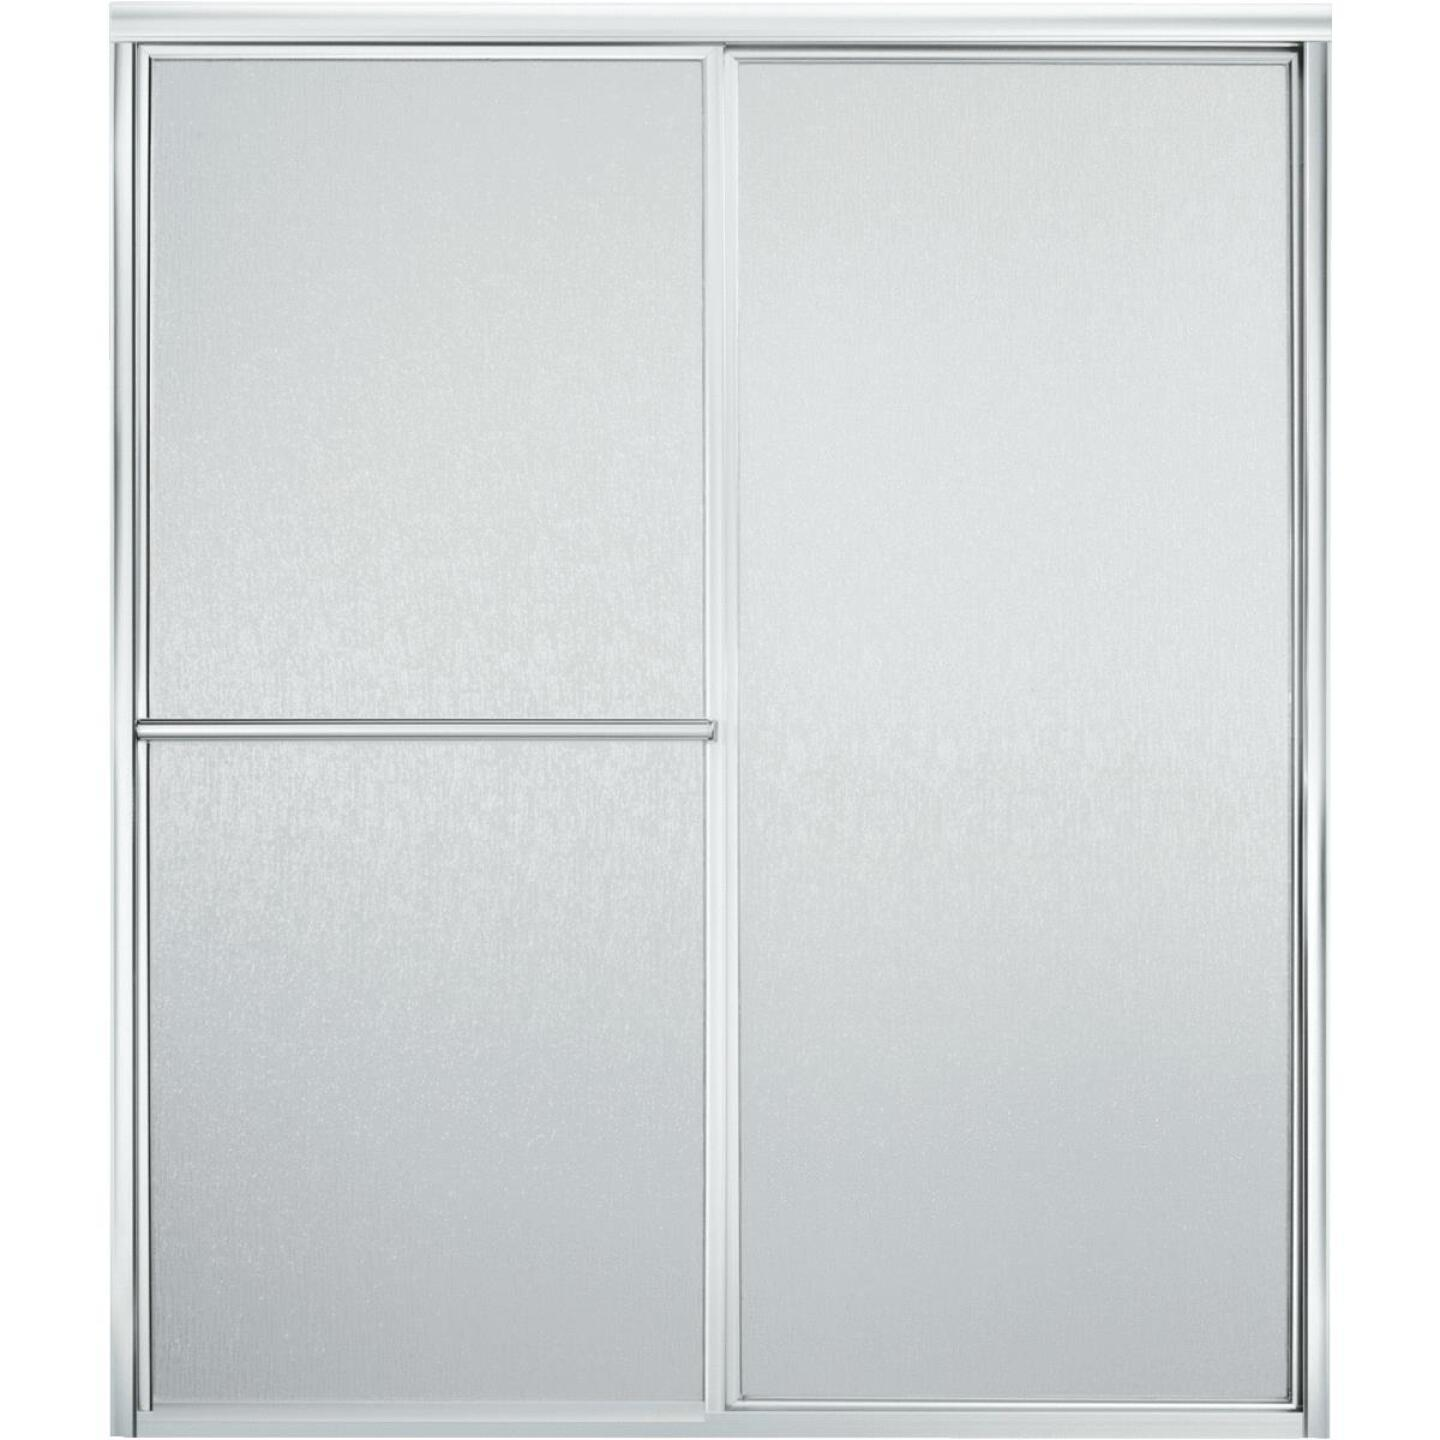 Sterling Advantage Series 59-3/8 In. W. X 69-15/16 In. H. Chrome Deluxe Sliding Shower Doors For Seated Showers Image 1